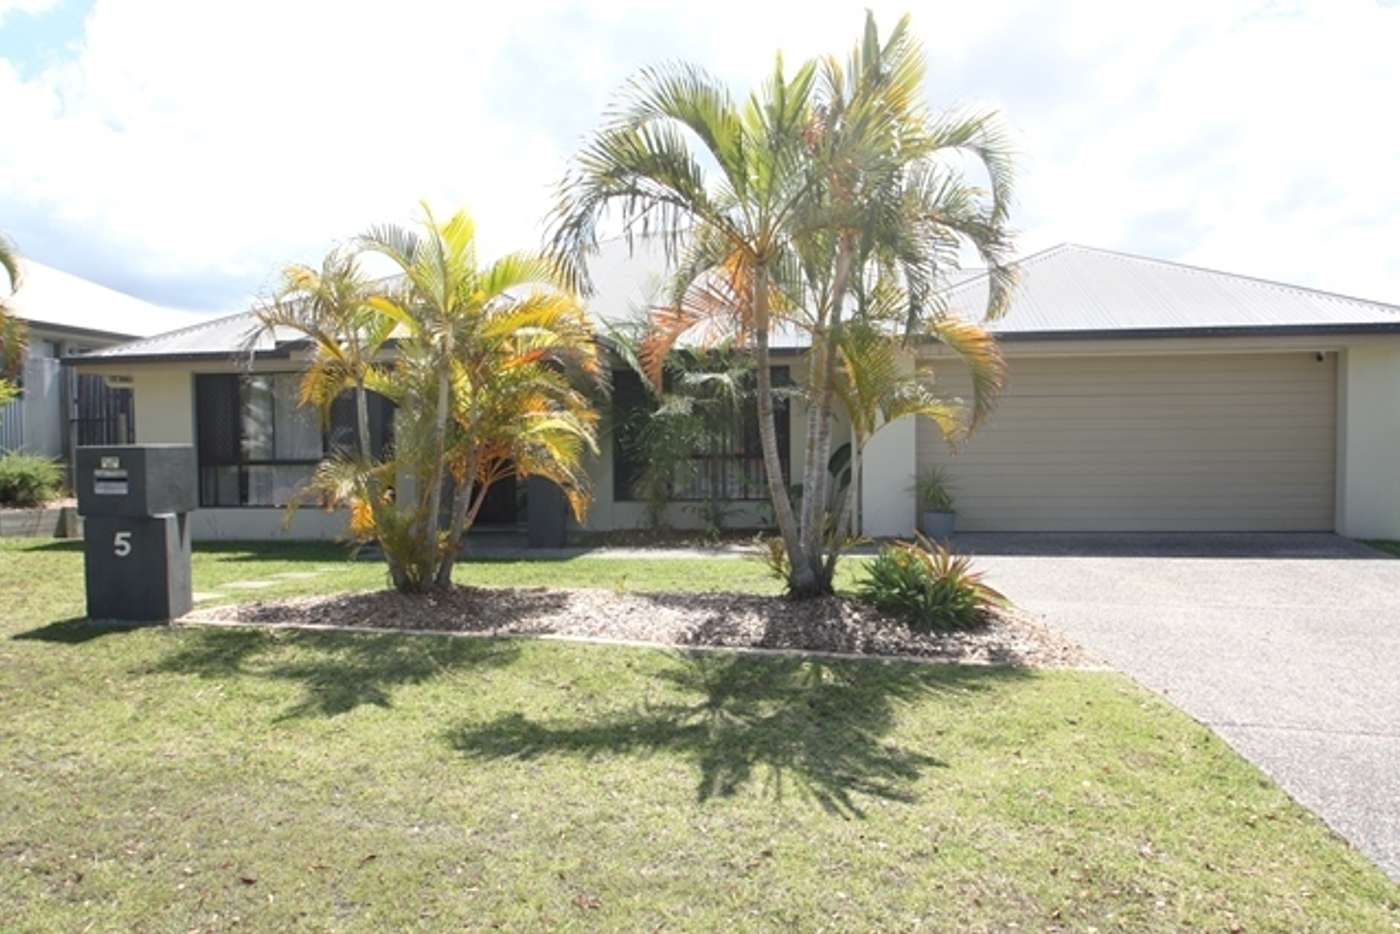 Main view of Homely house listing, 5 Nimbus Court, Coomera QLD 4209